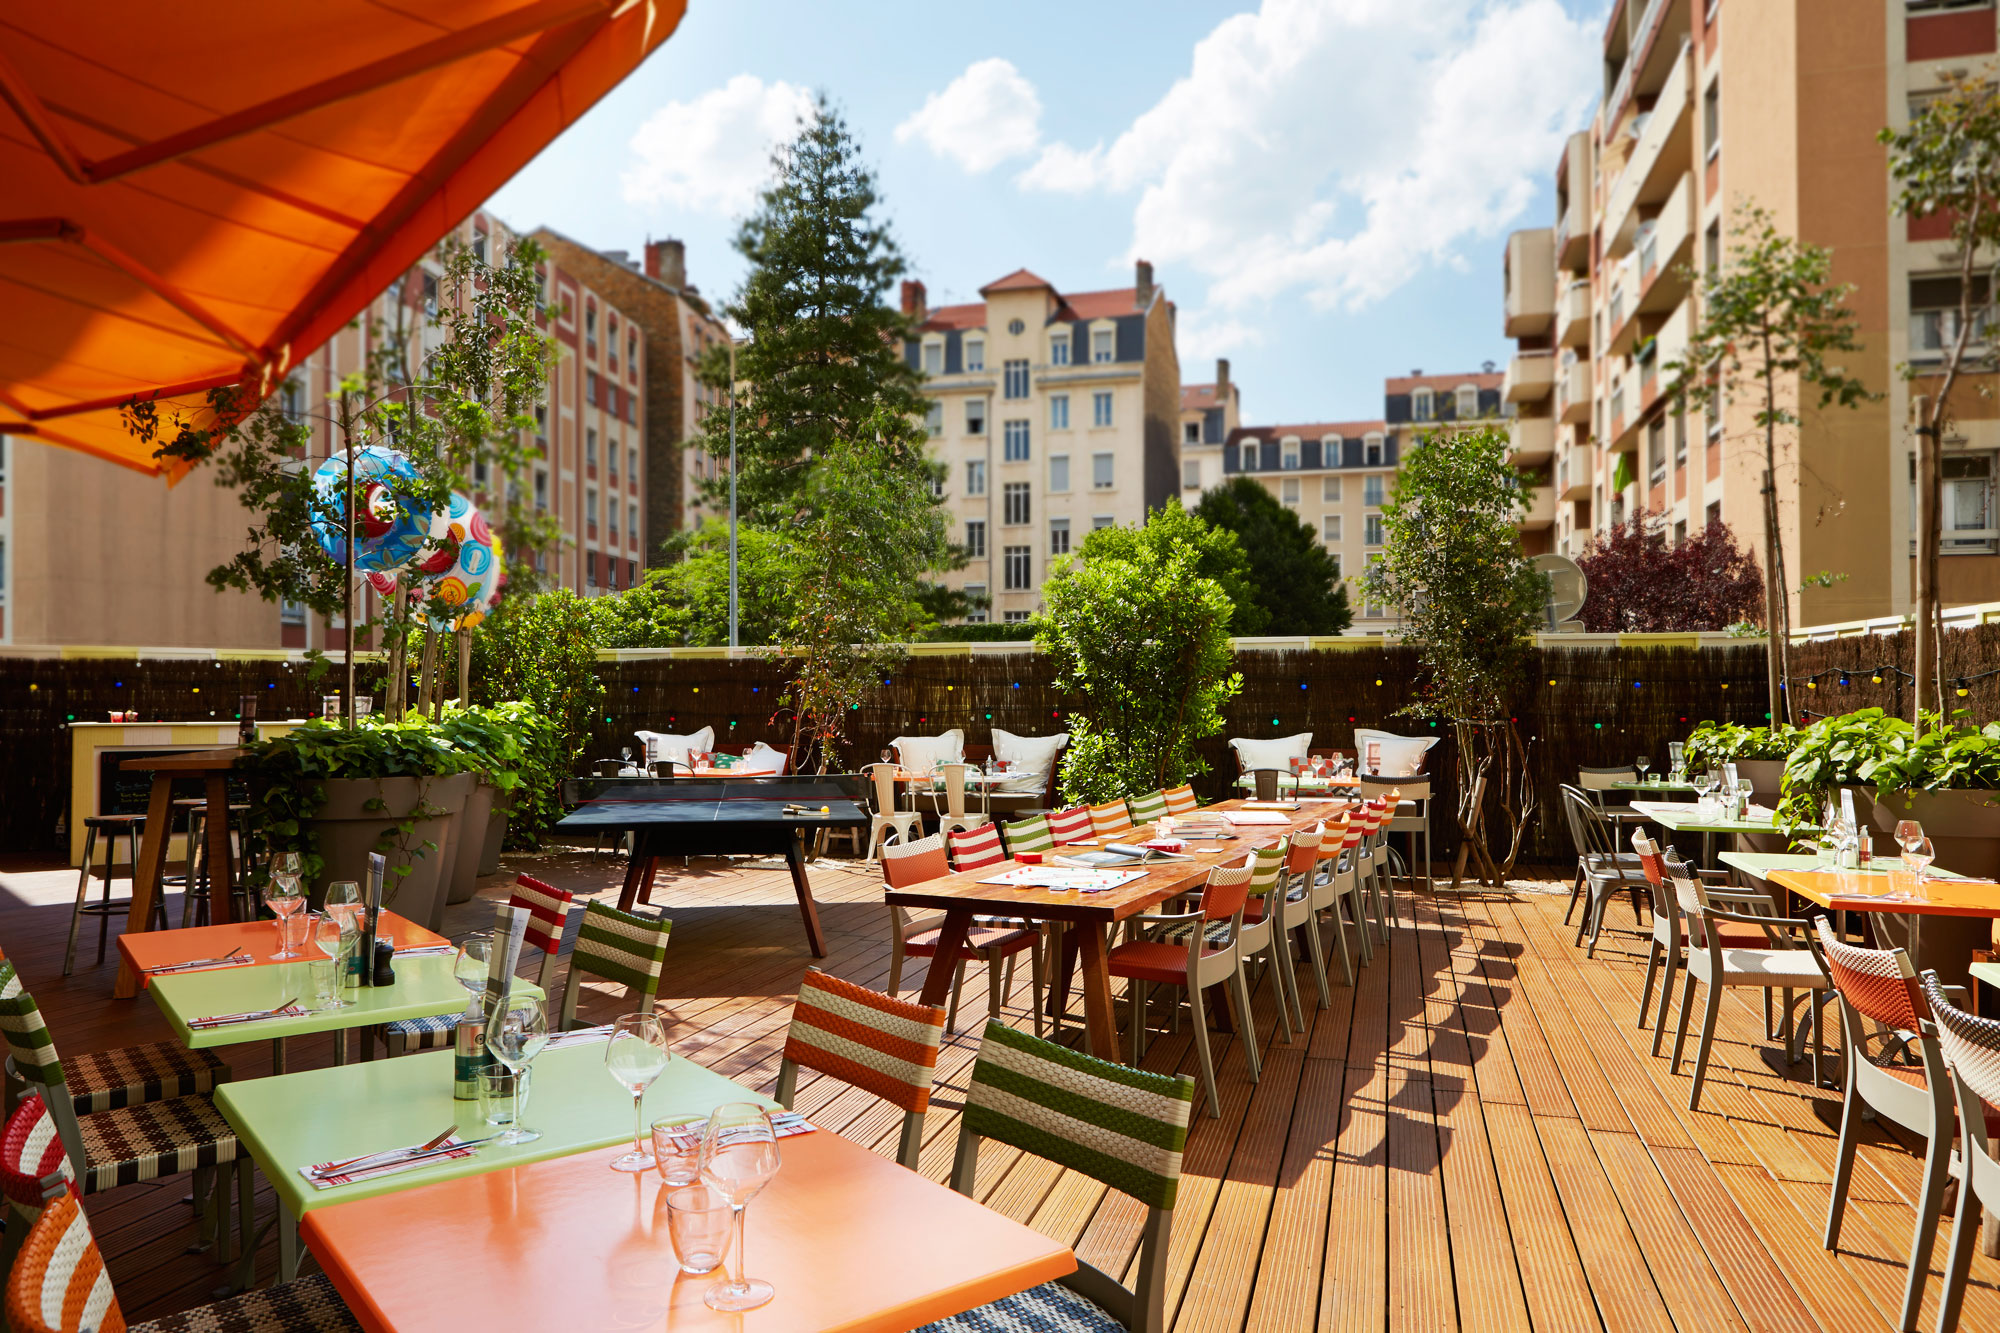 Mama shelter hotel lyon effortless cool for Terrasse lyon